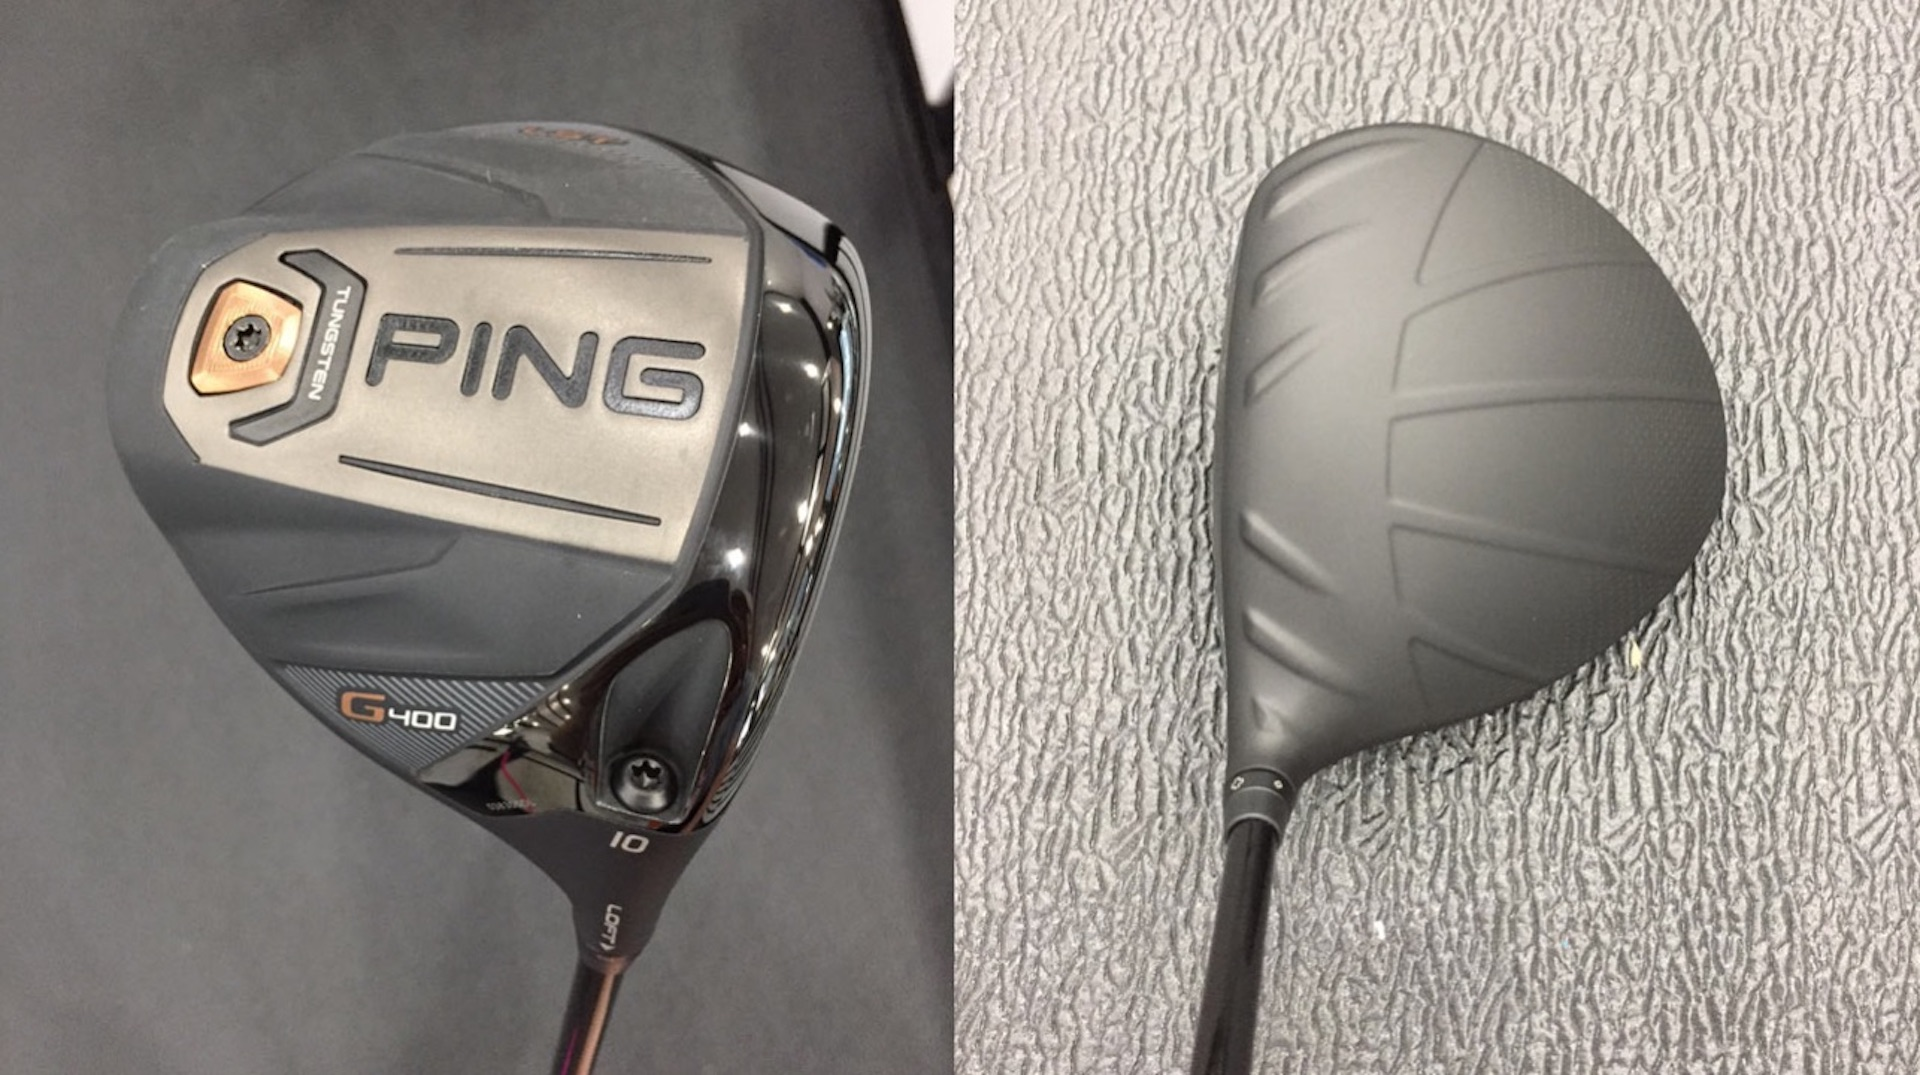 Bubba's got a brand new PING driver